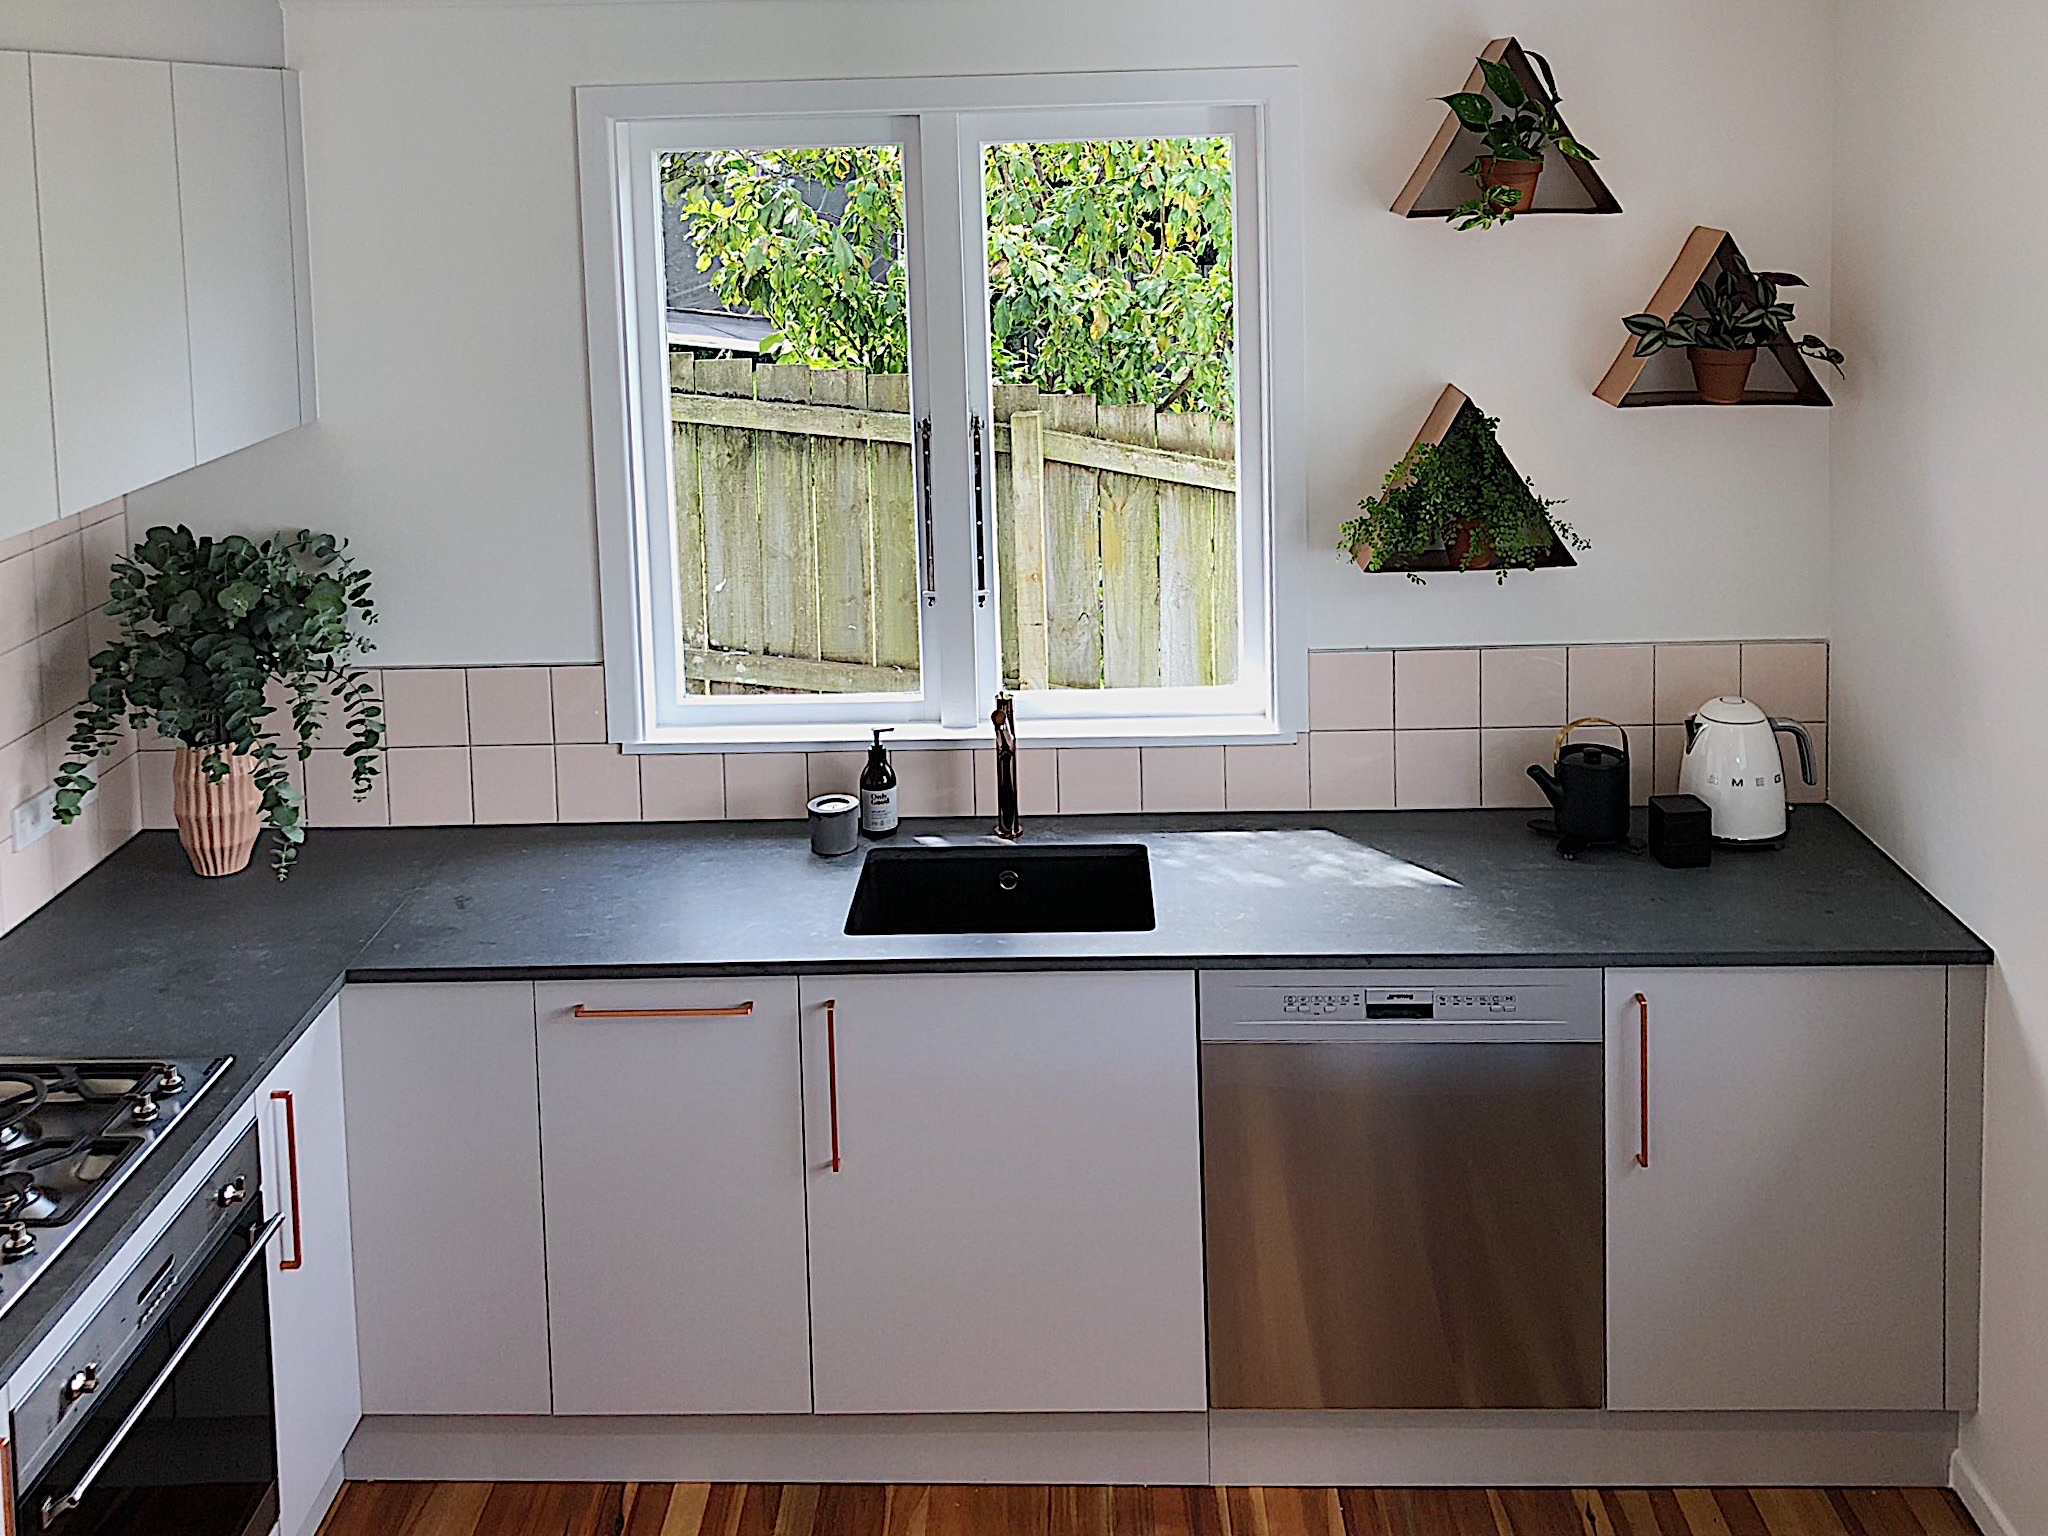 Pearson and Projects Relocatable Reno Kitchen Project - 29.jpg